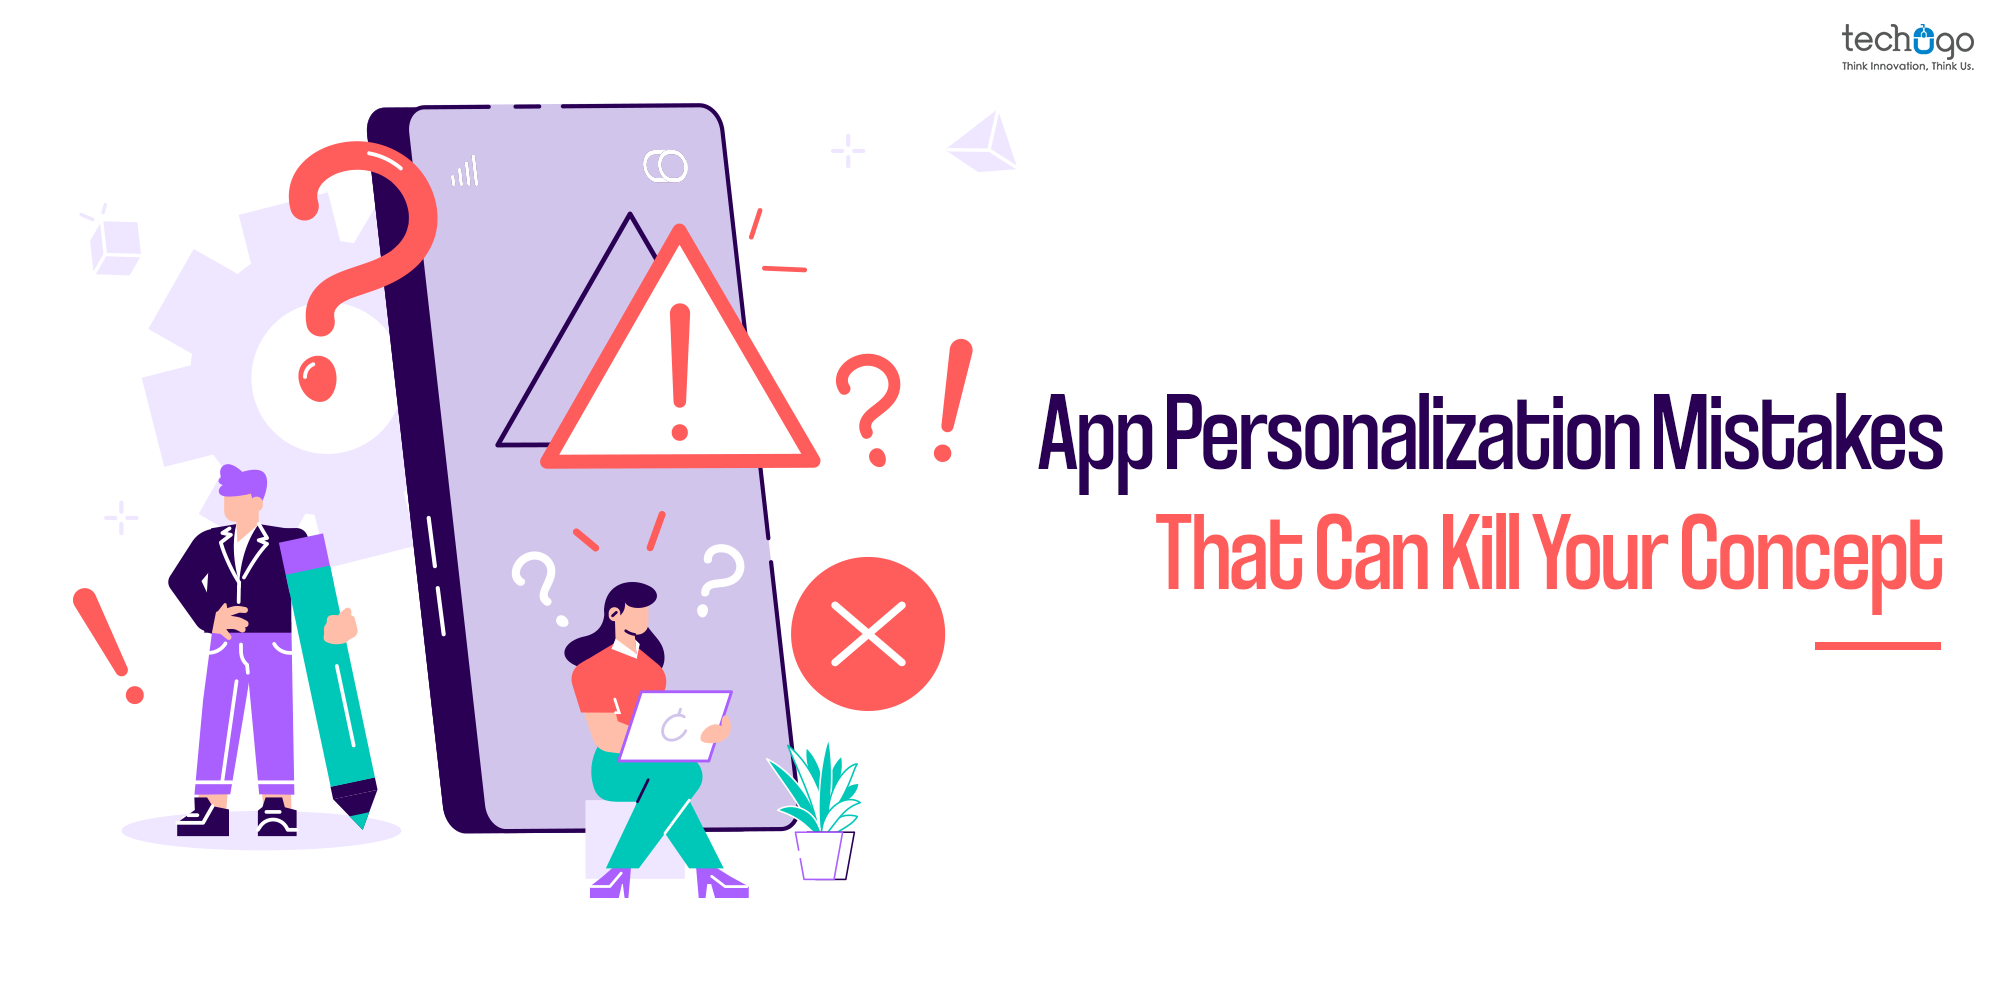 App Personalization Mistakes That Can Kill Your Concept